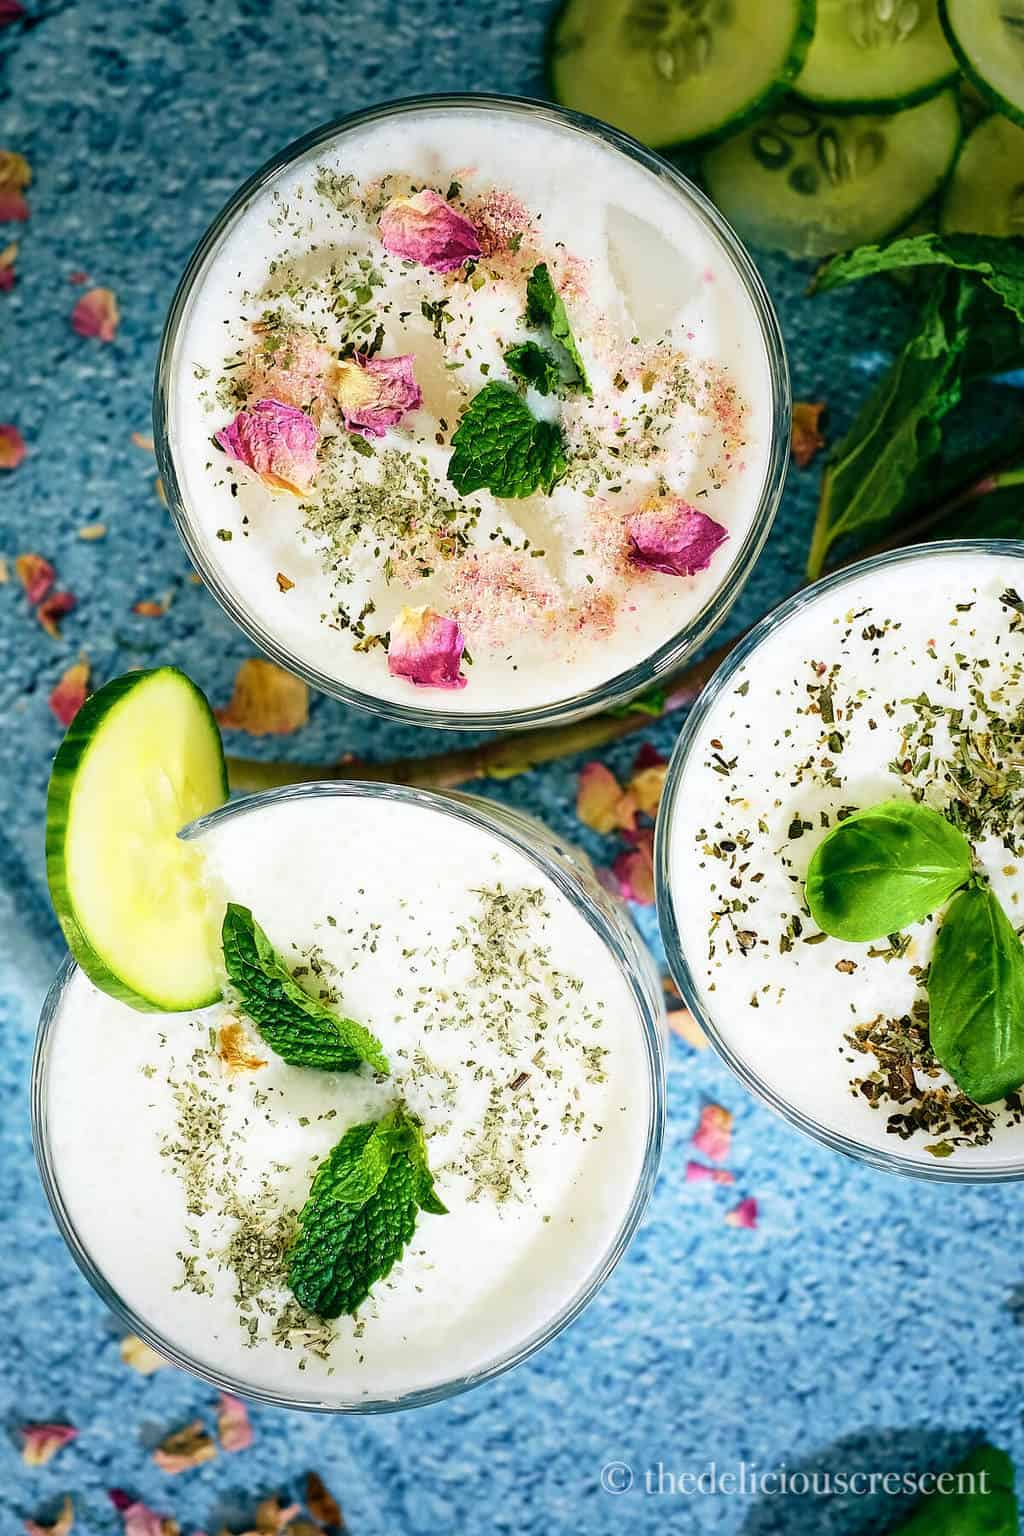 Overhead view of yogurt based beverage topped with herbs and rose petals.